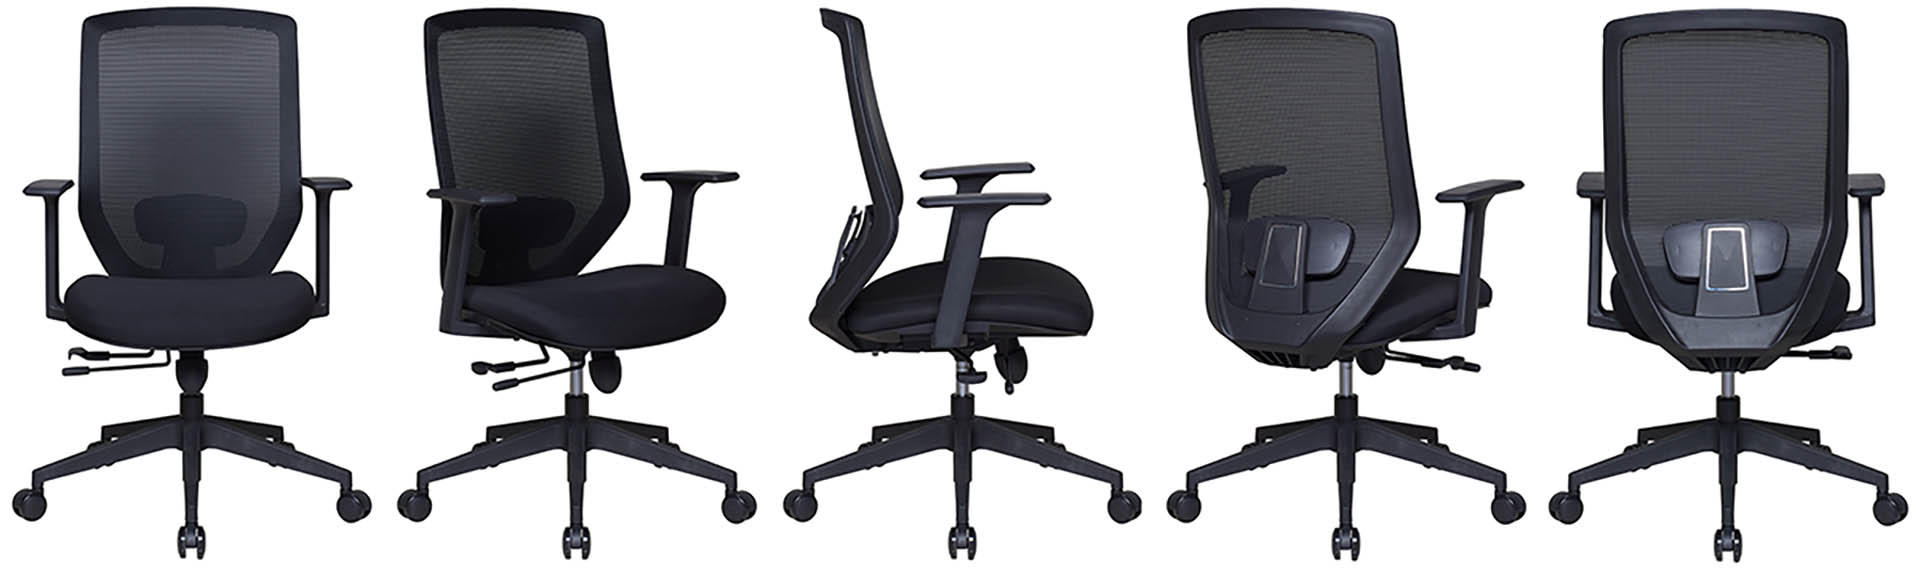 Tevson rotating swivel office chair-1